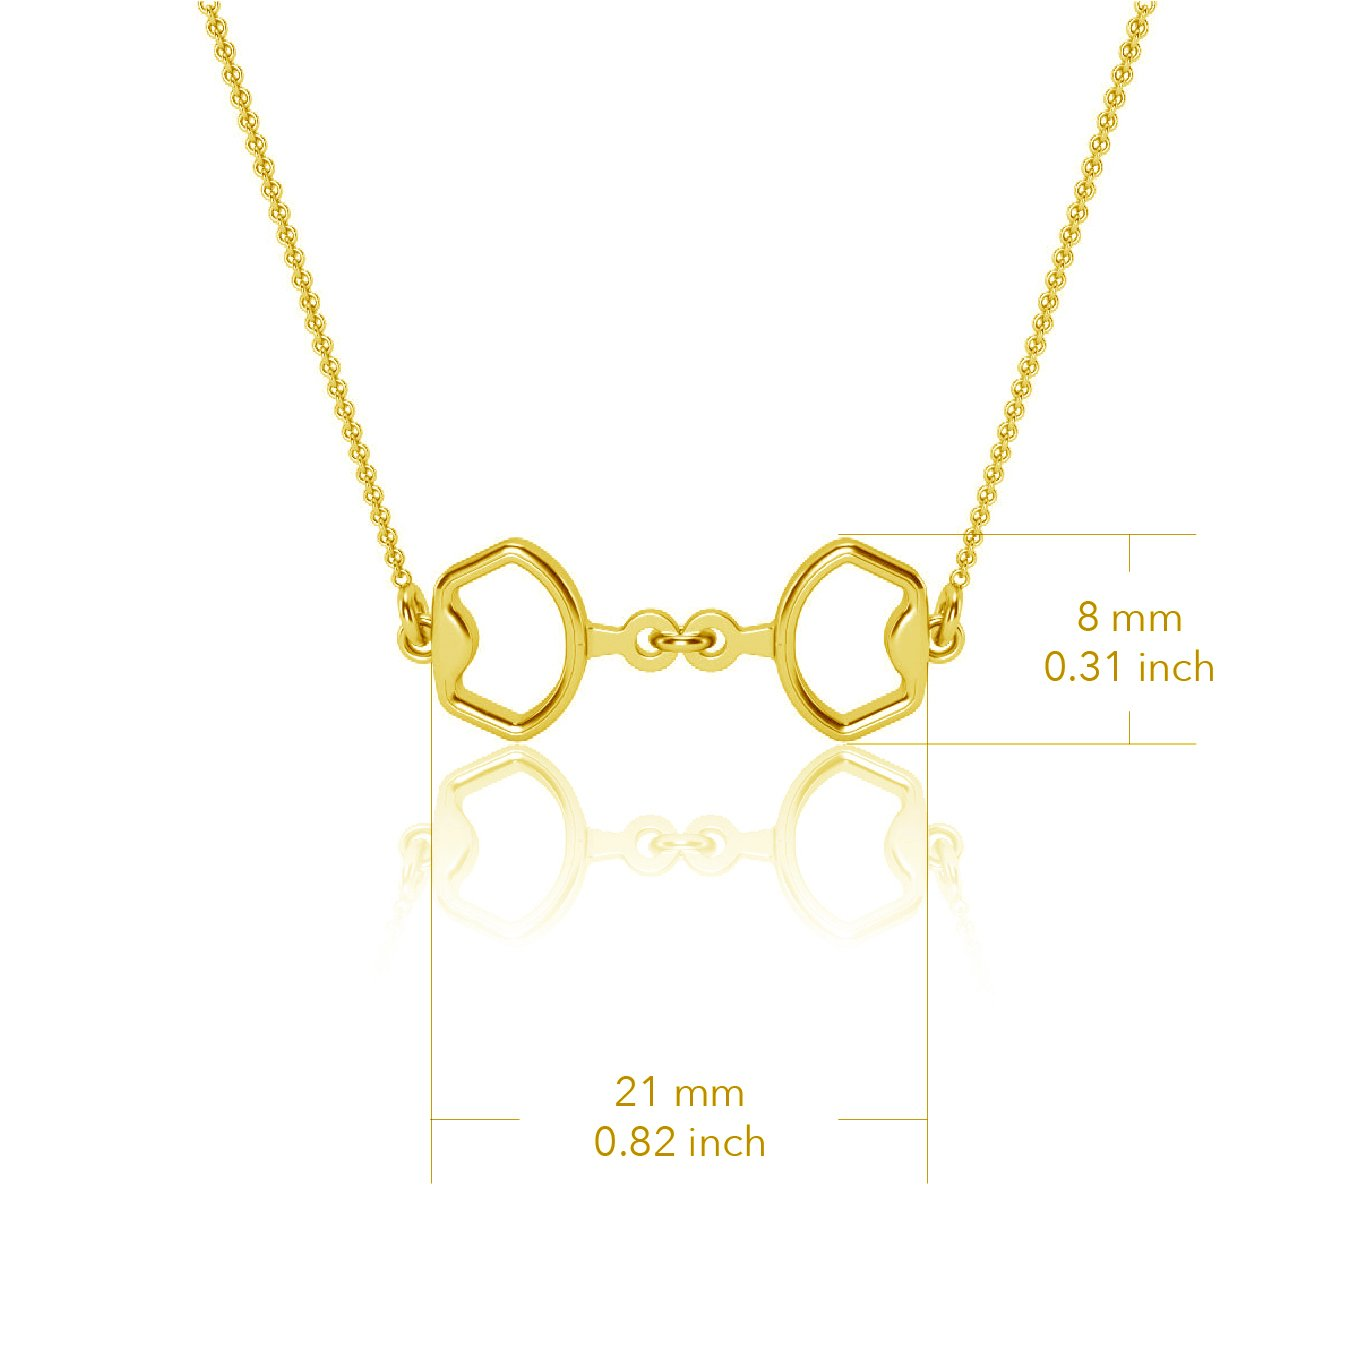 Horse Bit Equestrian Pendant Necklace - Gold Plated